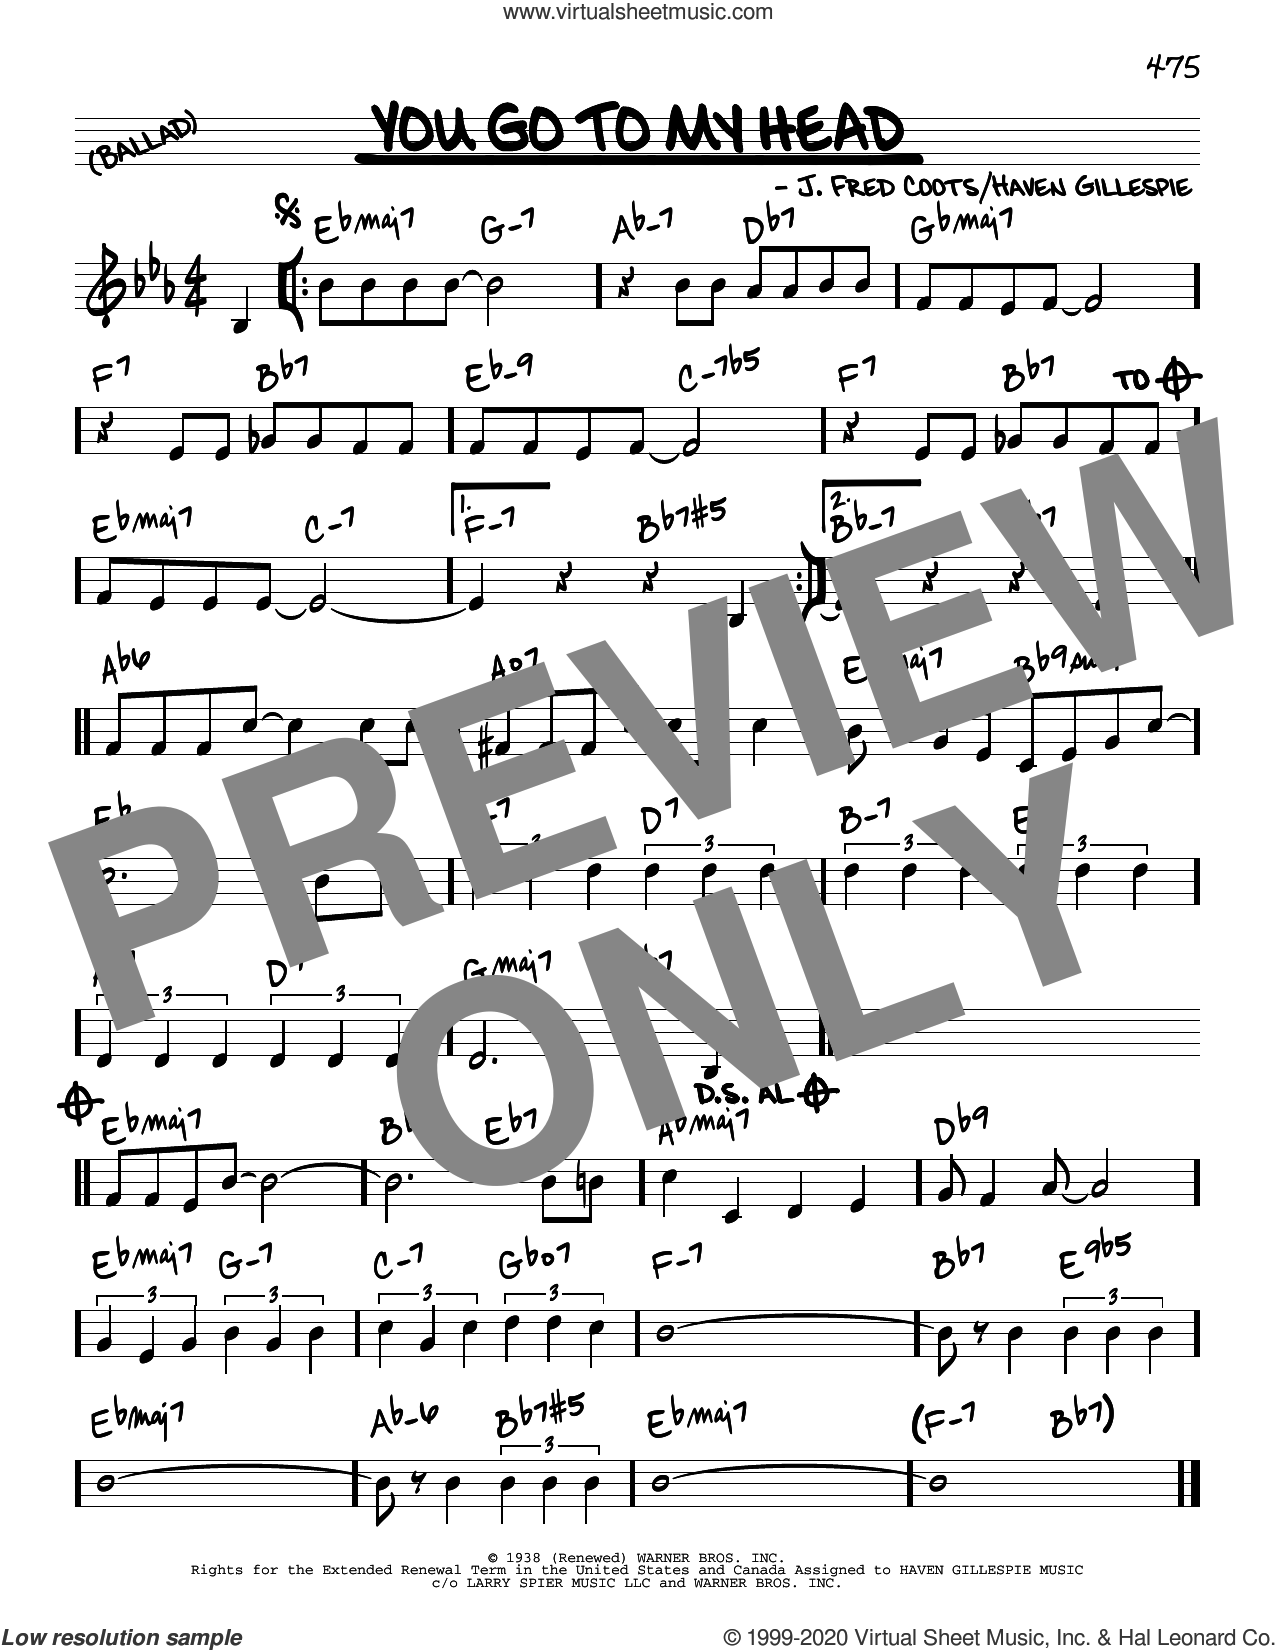 You Go To My Head sheet music for voice and other instruments (real book) by Haven Gillespie and J. Fred Coots, intermediate skill level